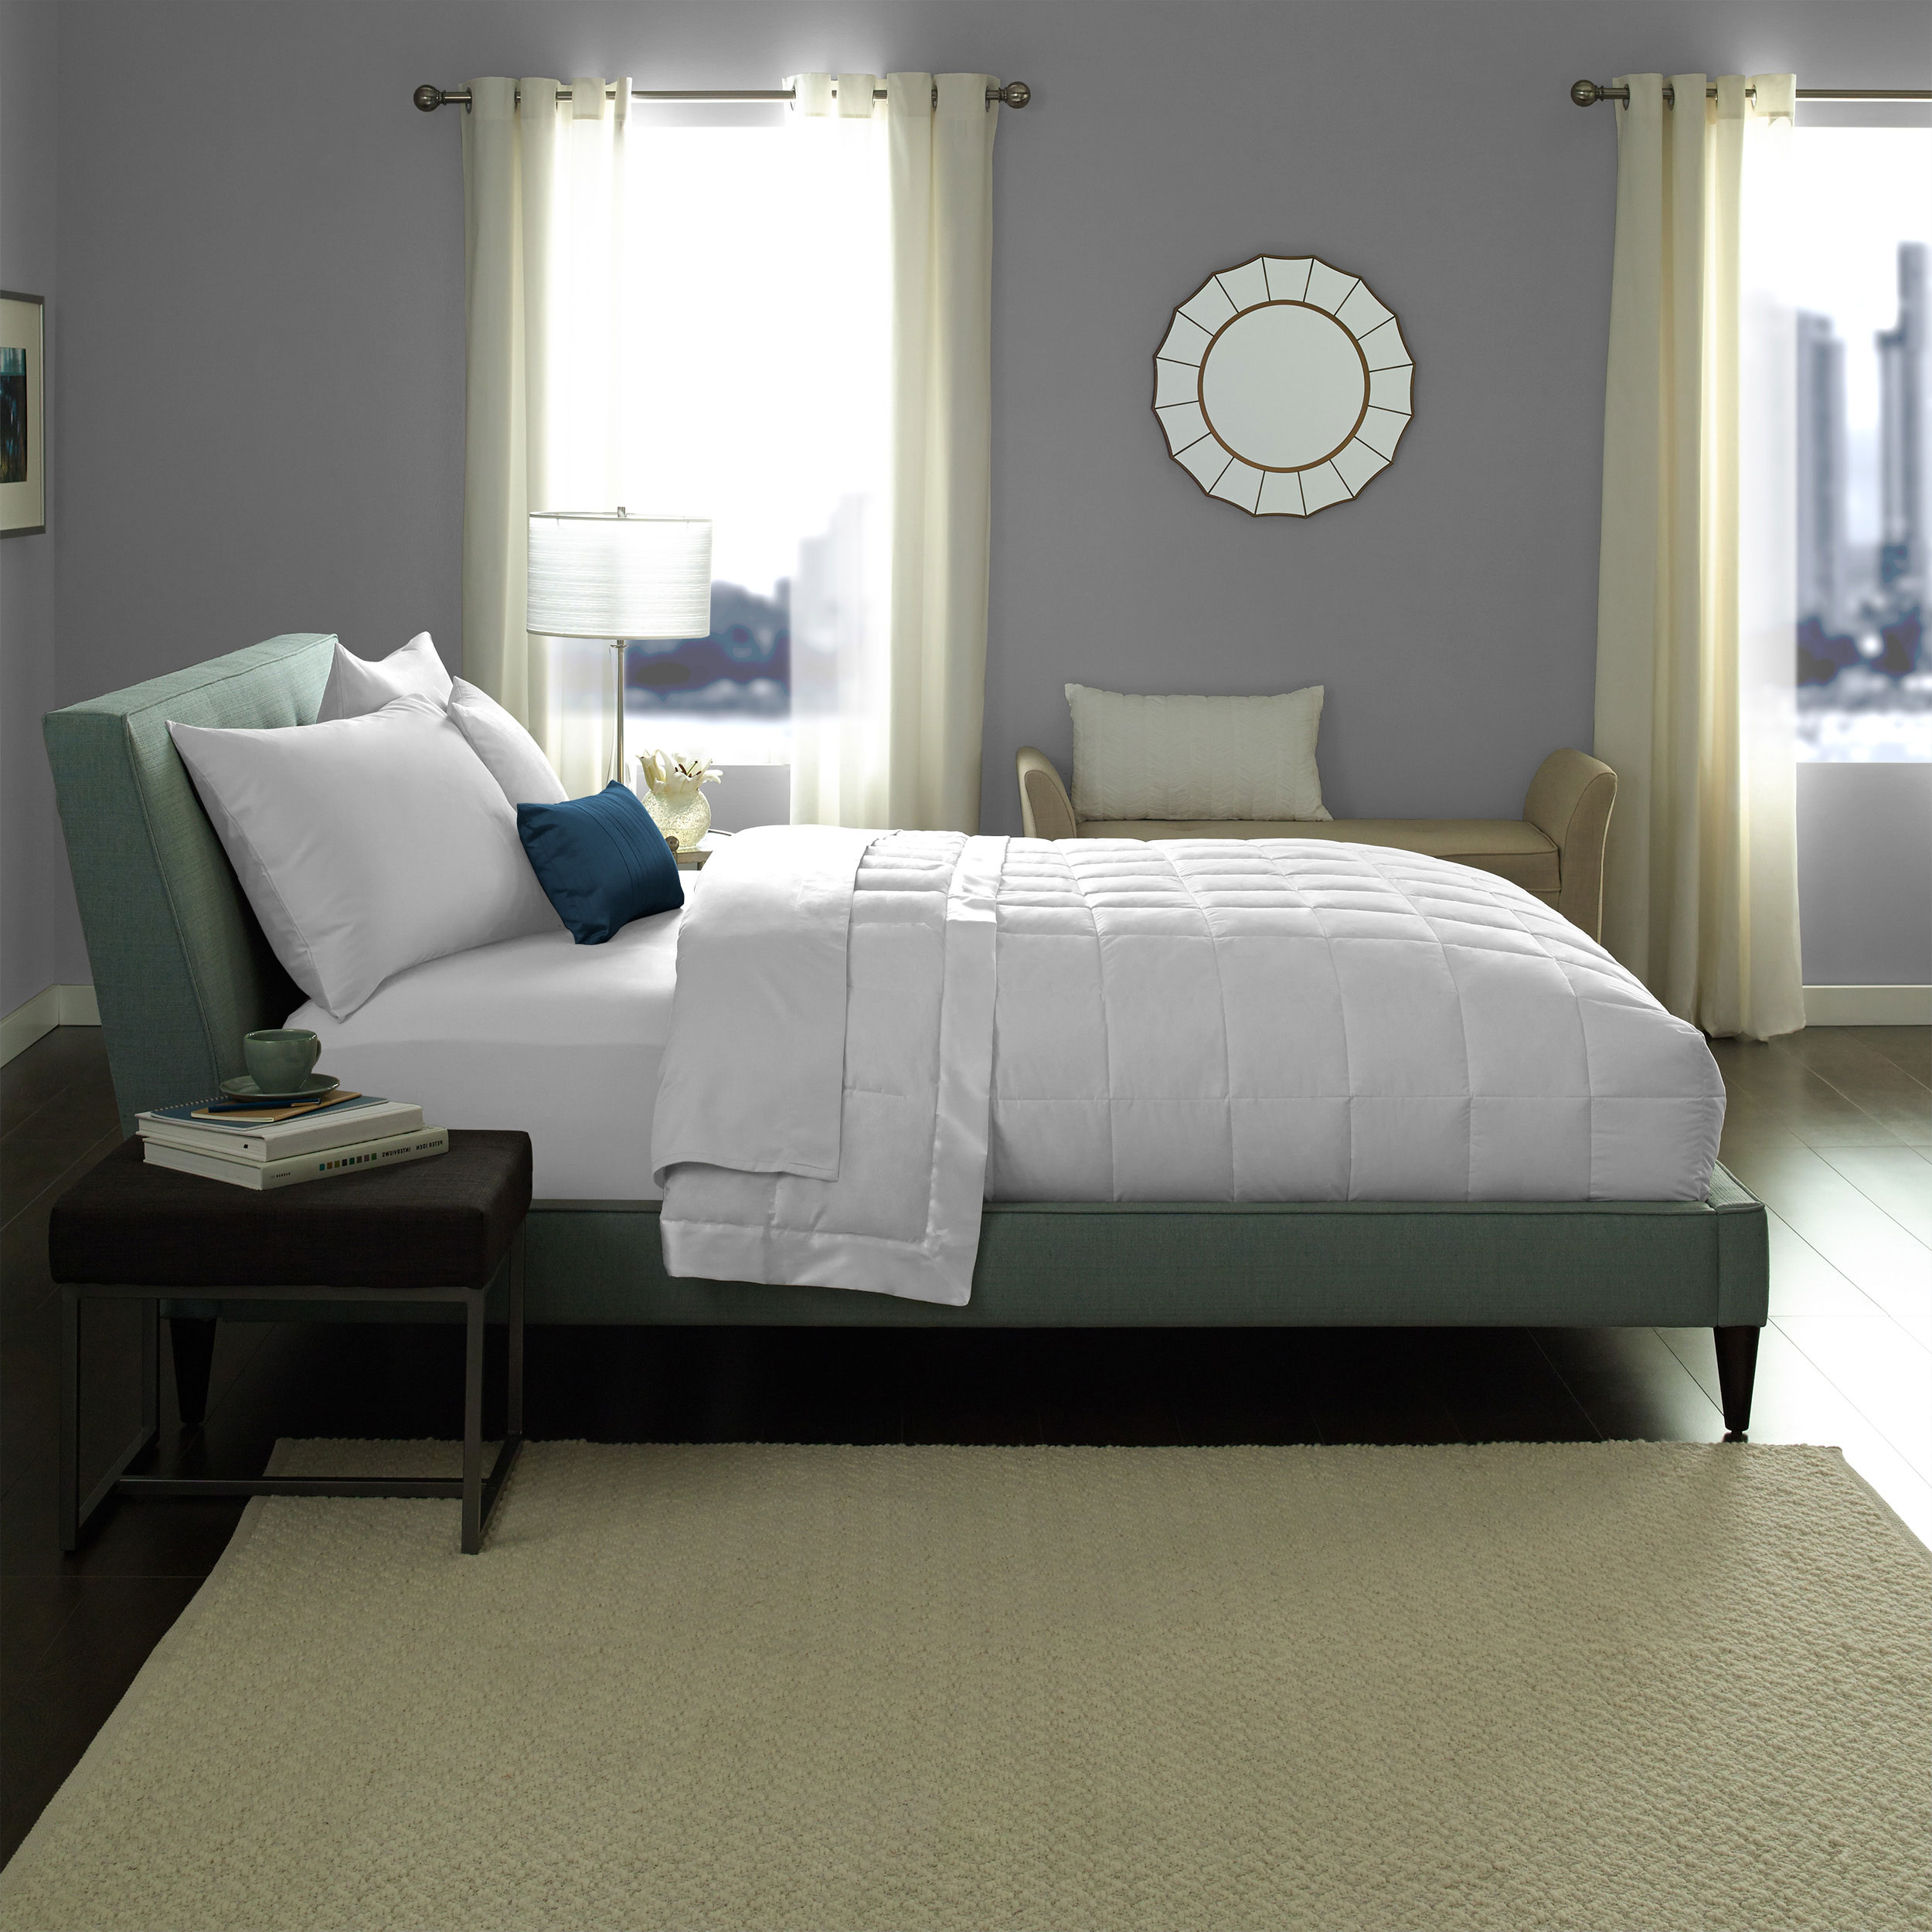 dr hotel sage sets size champagne set comforter in international queen piece bedding tranquility